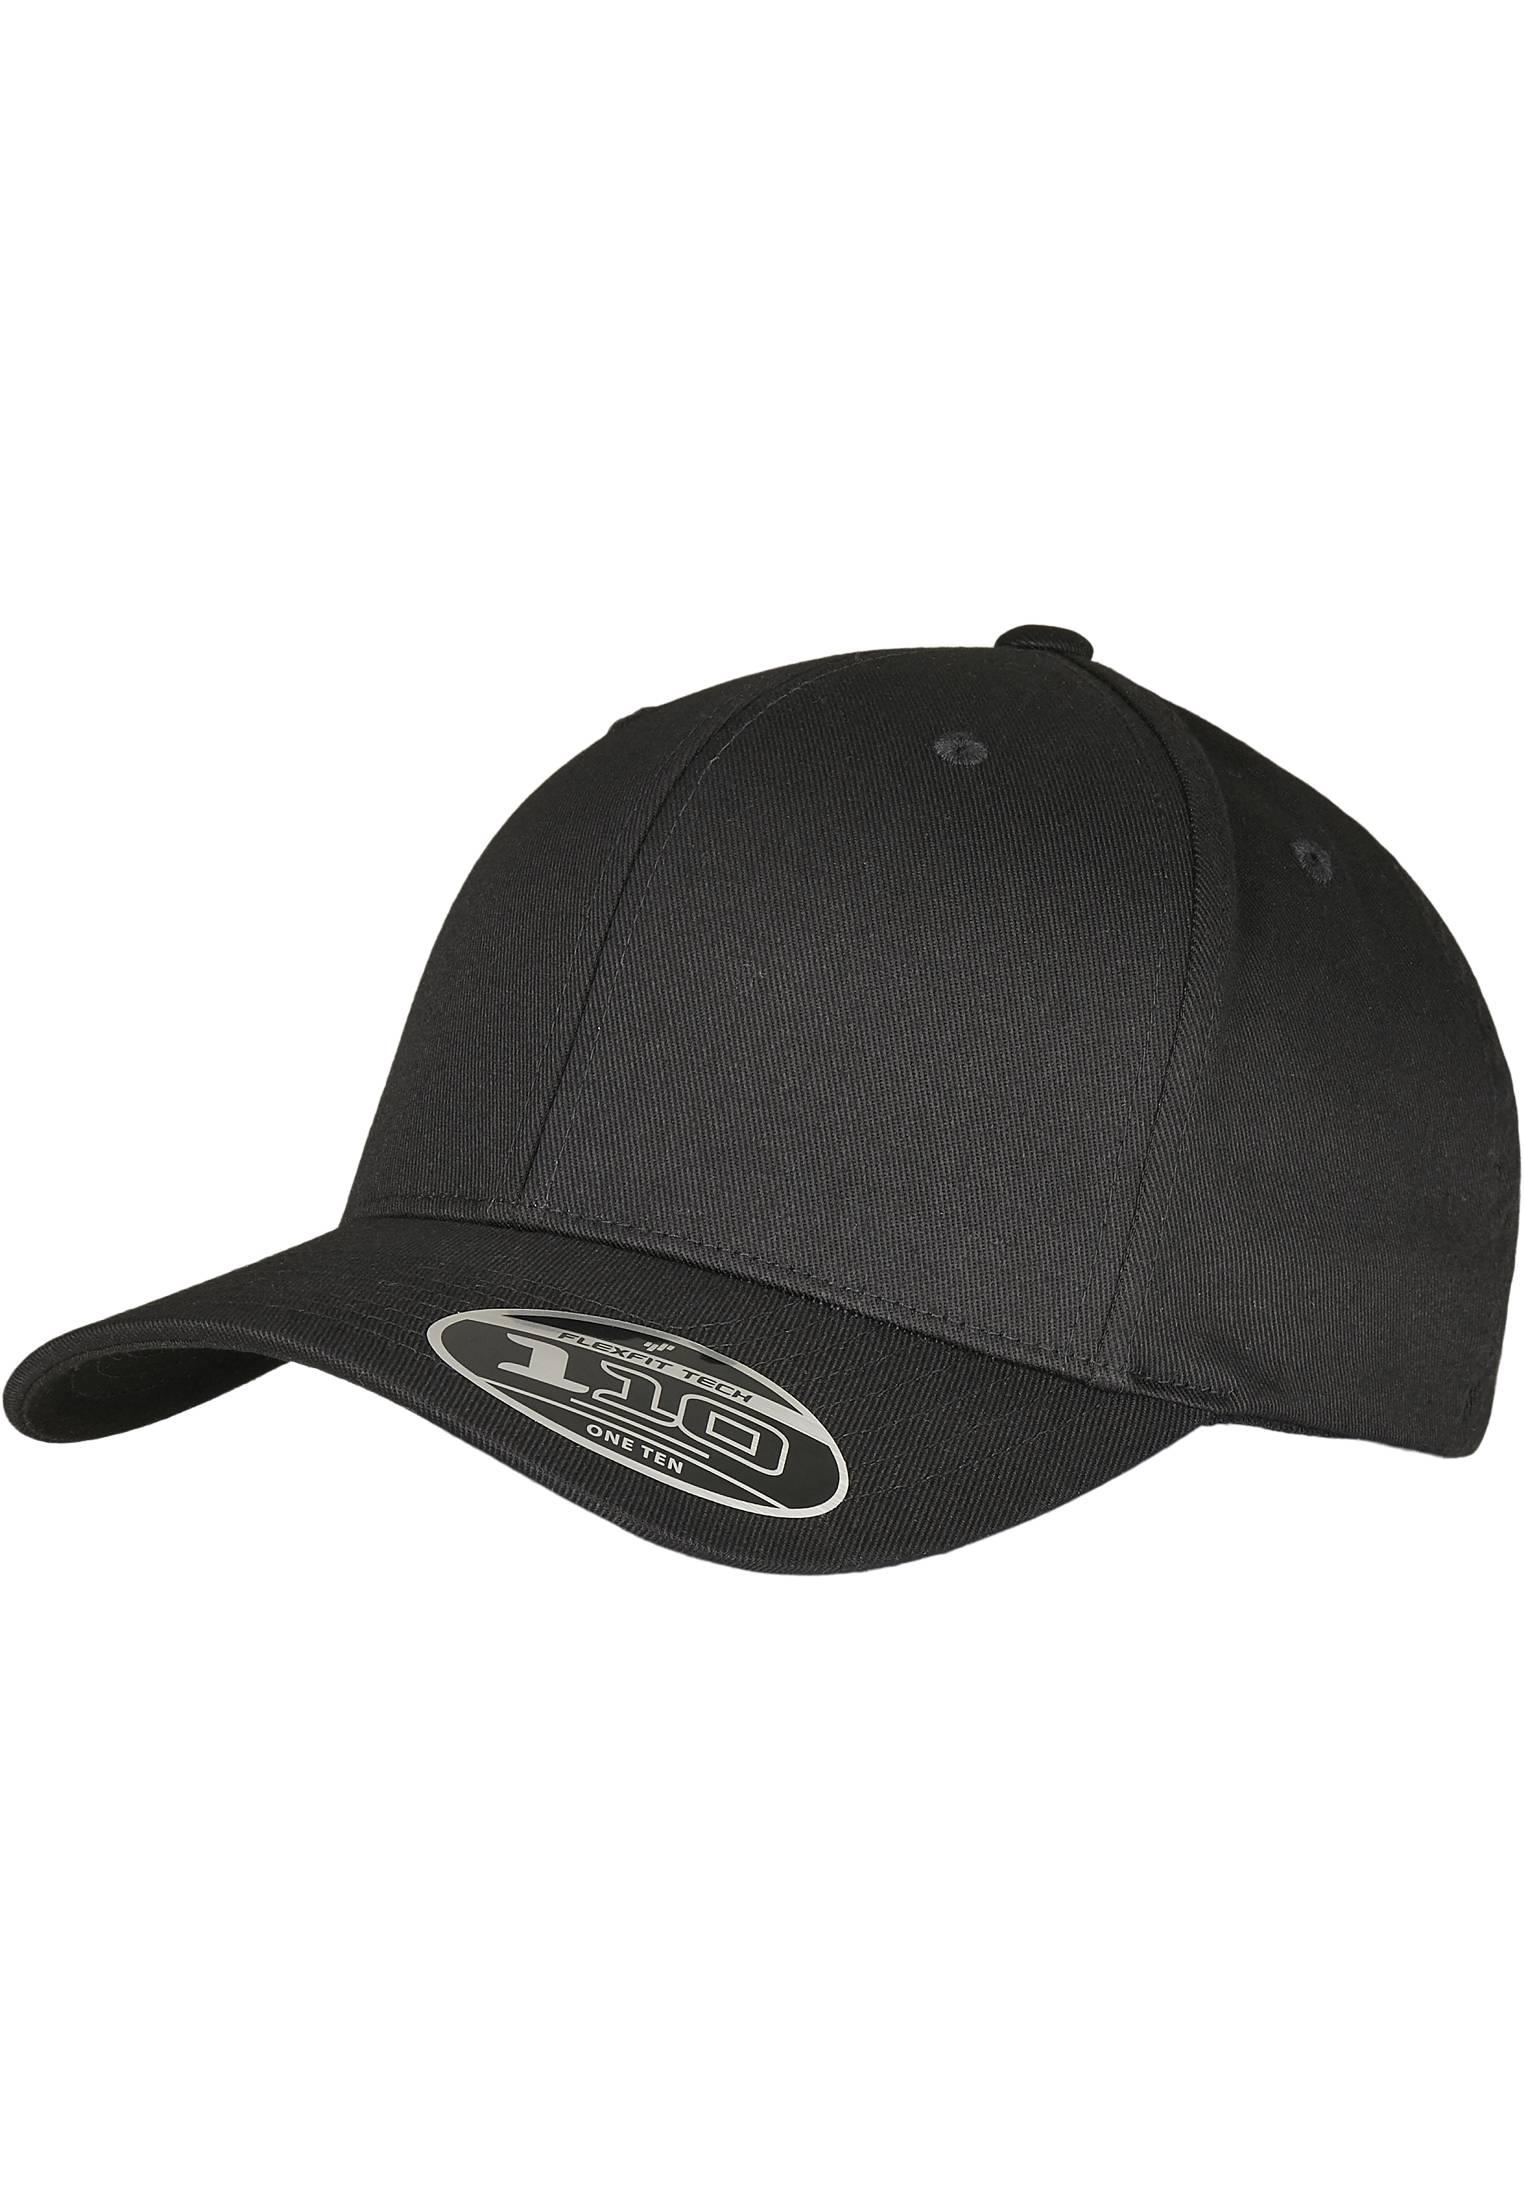 Urban Classic Flexfit Wooly Combed Adjustable black/black - One Size